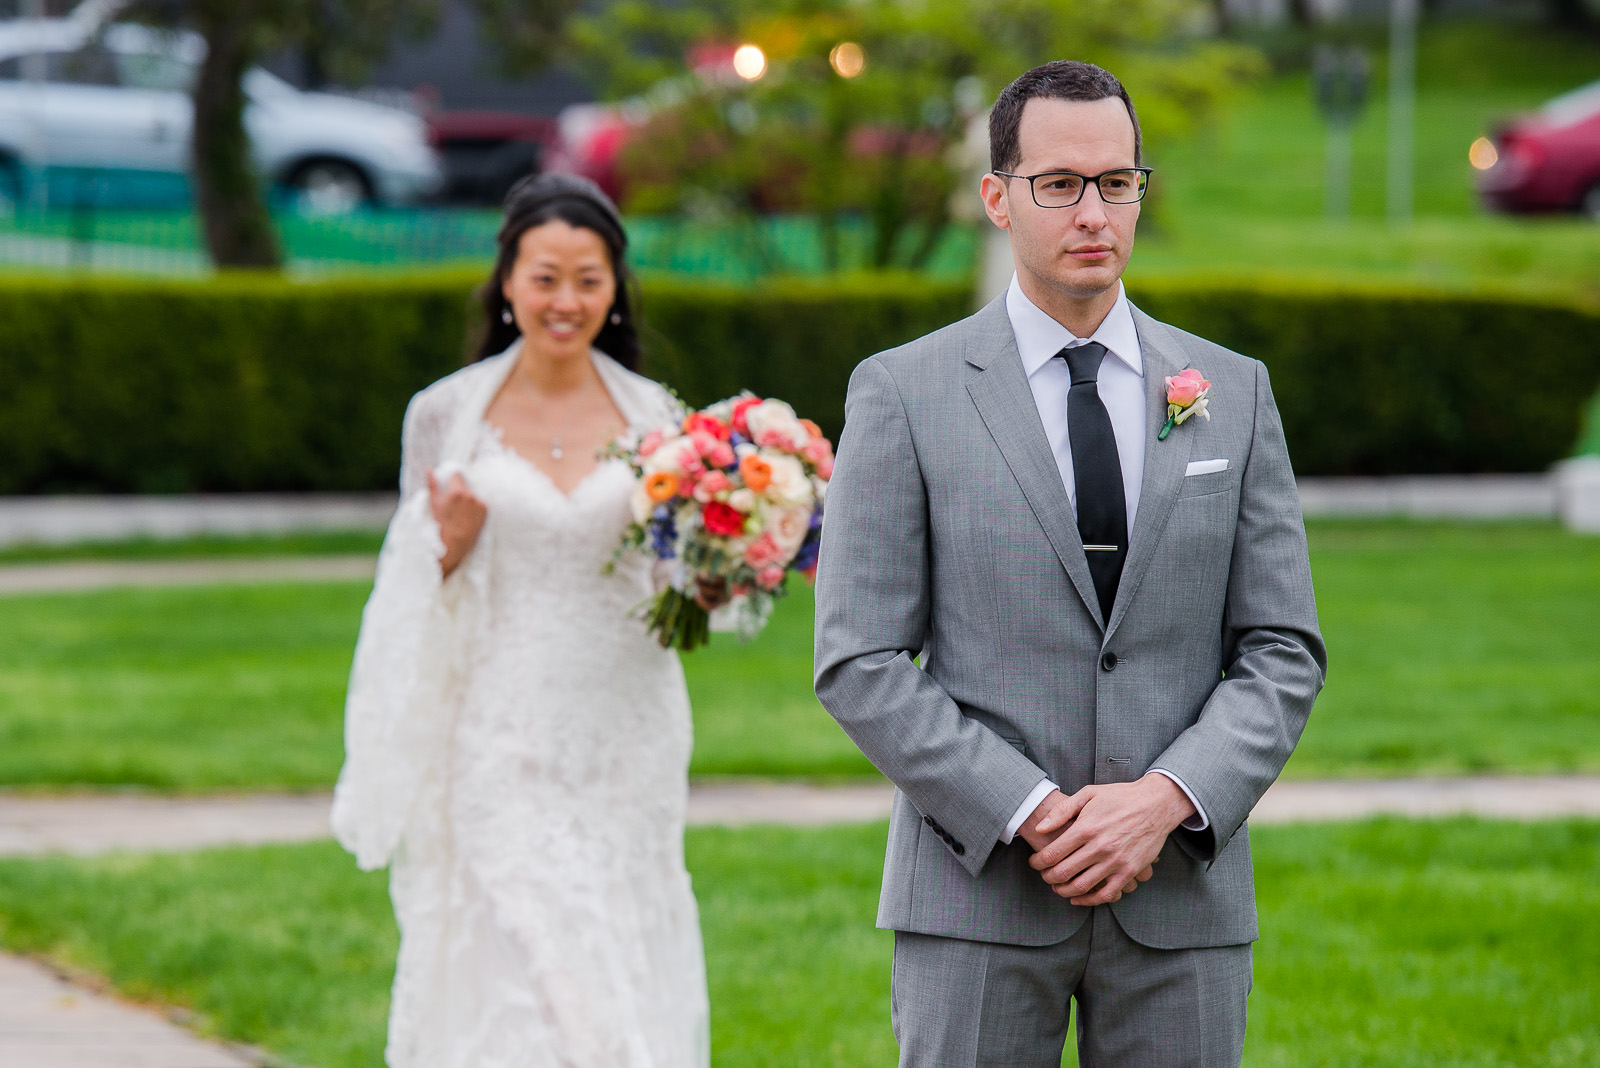 Eric_and_Christy_Photography_Blog_Wedding_Anne_Michael-7